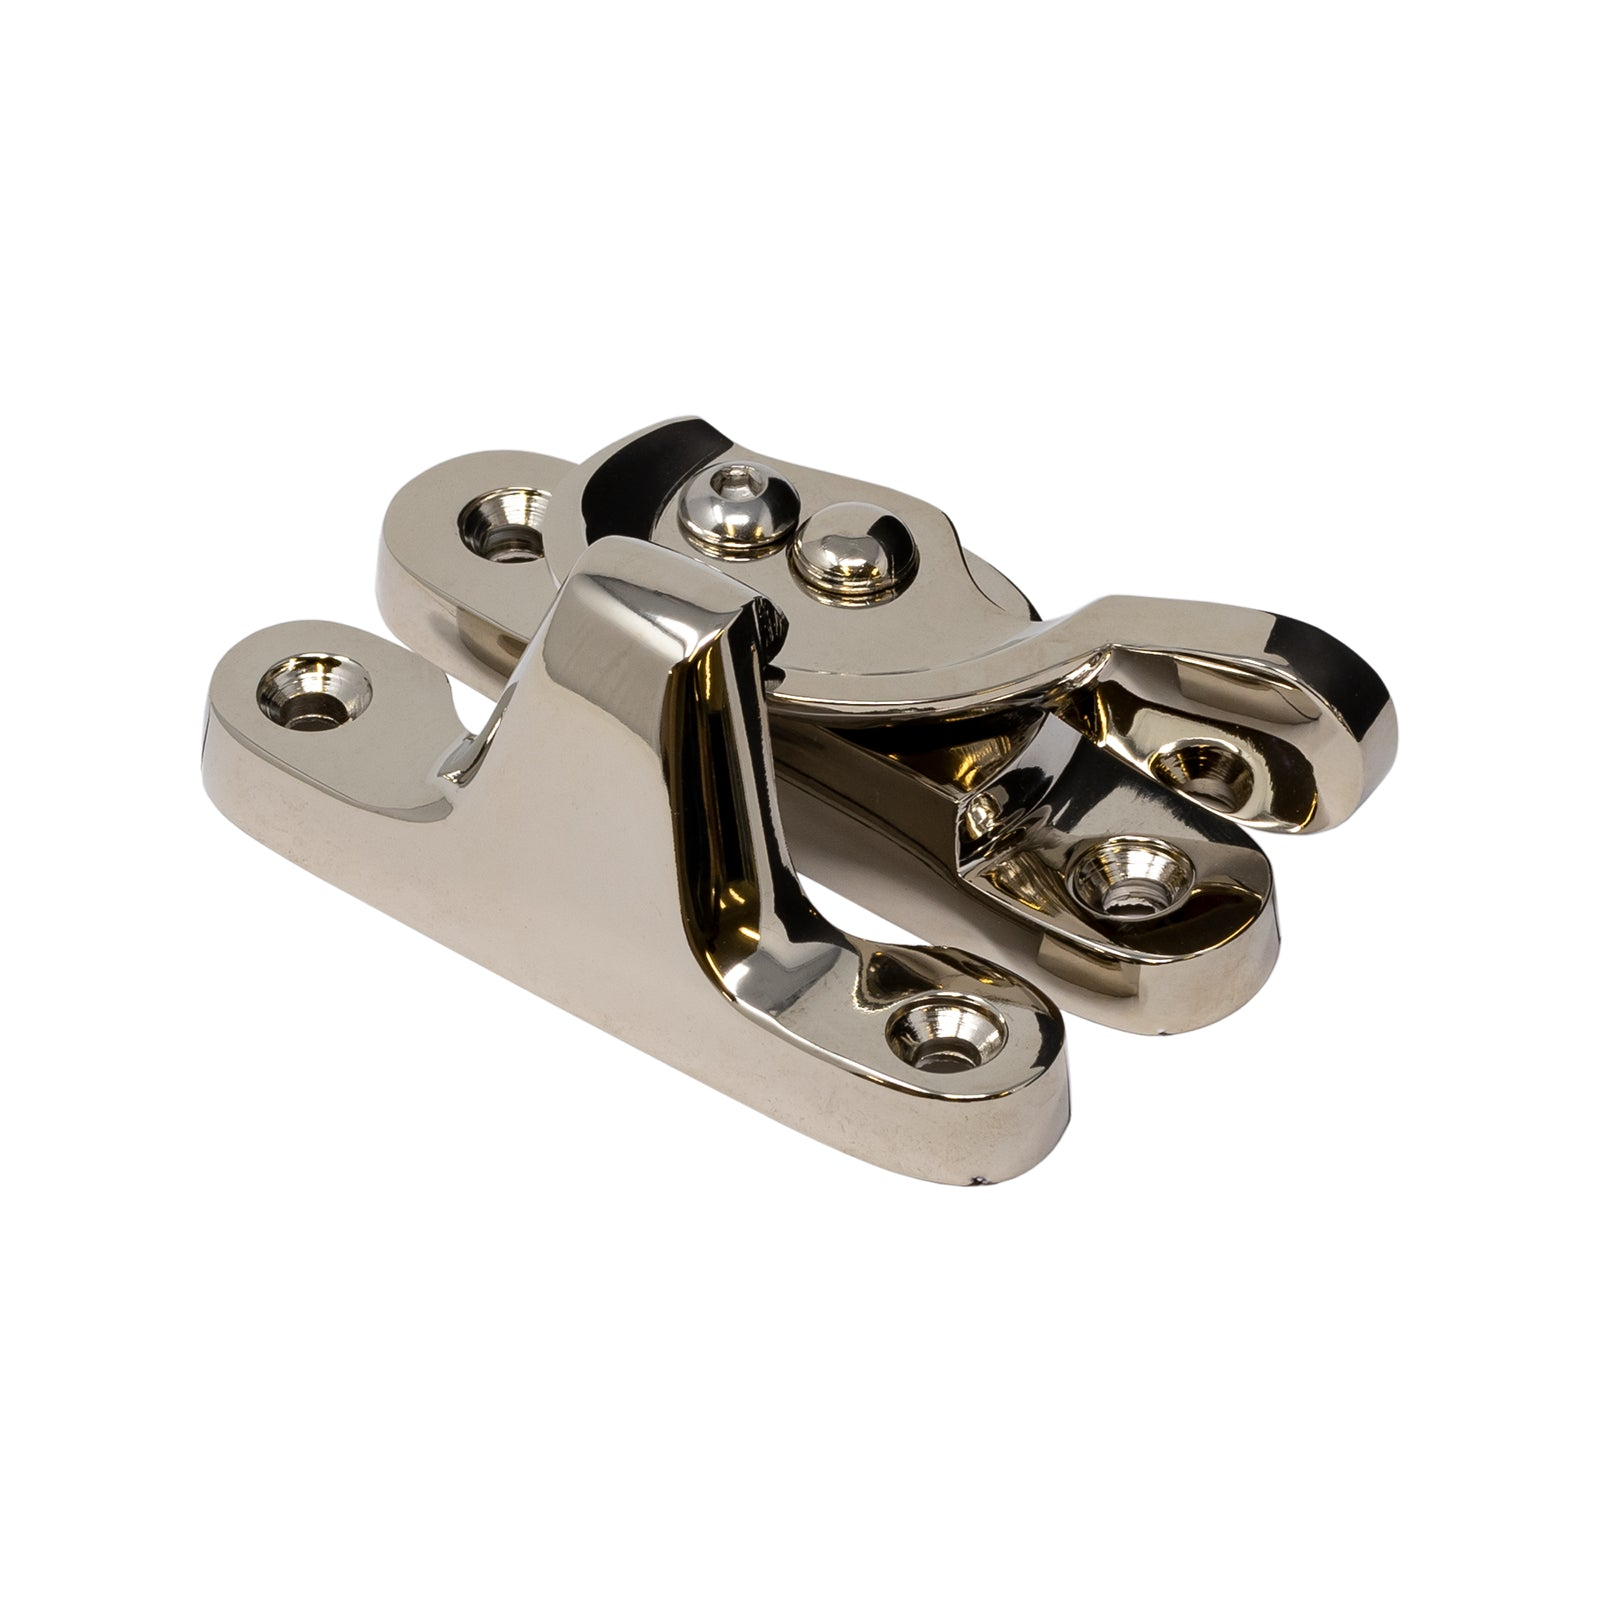 Fitch Sash Window Fastener in Polished Nickel Finish SHOW